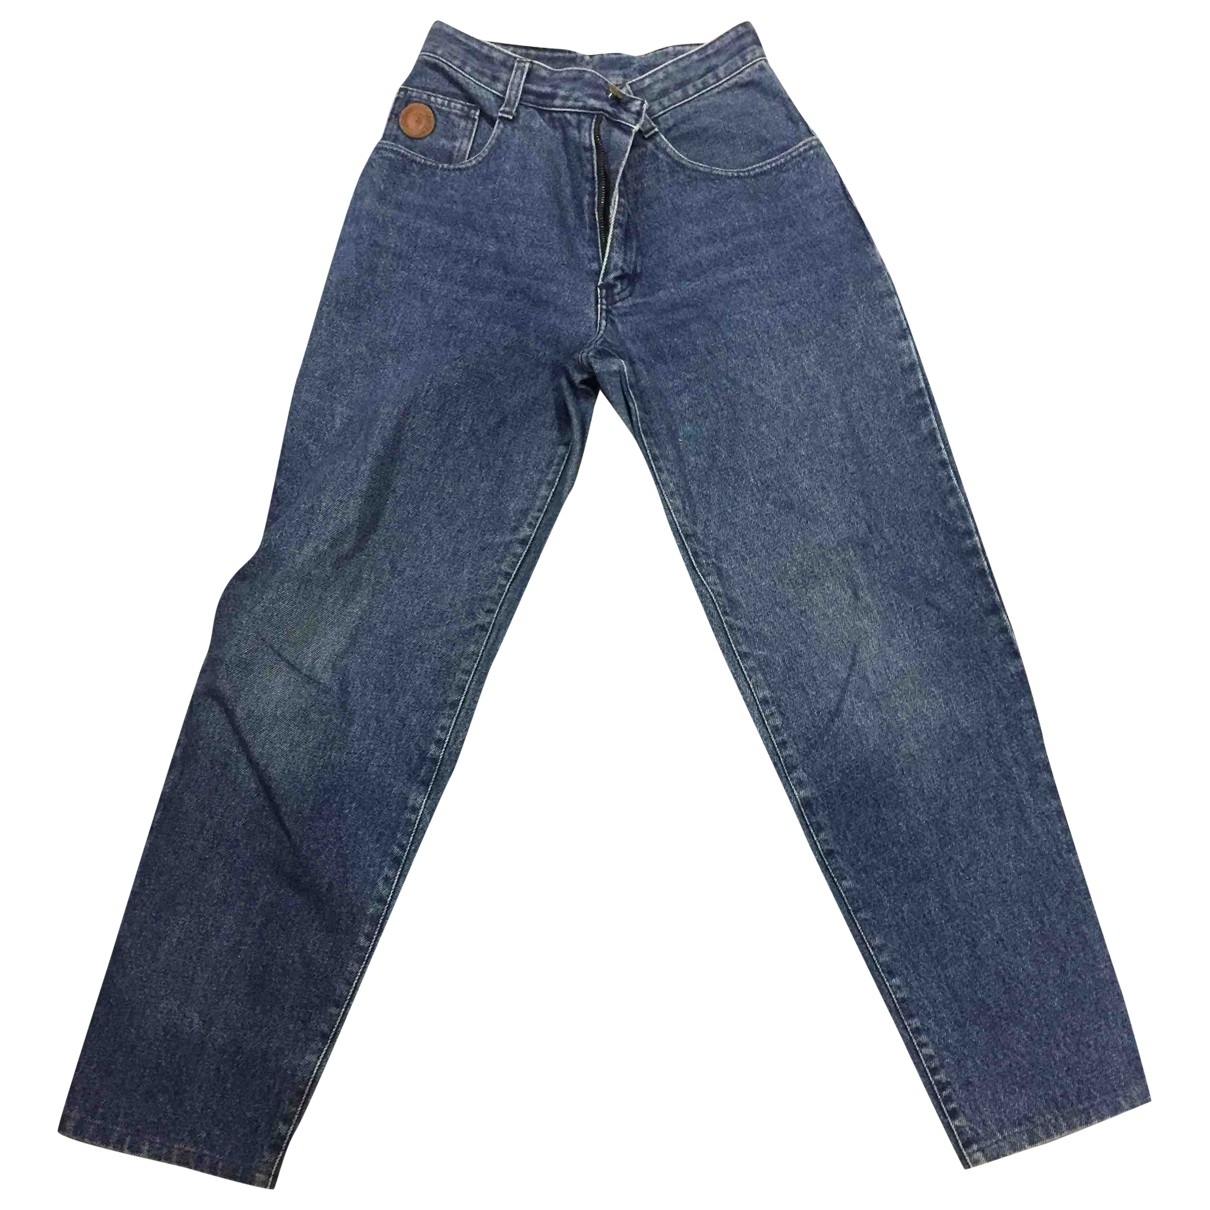 Trussardi Jeans \N Denim - Jeans Jeans for Women 29 US